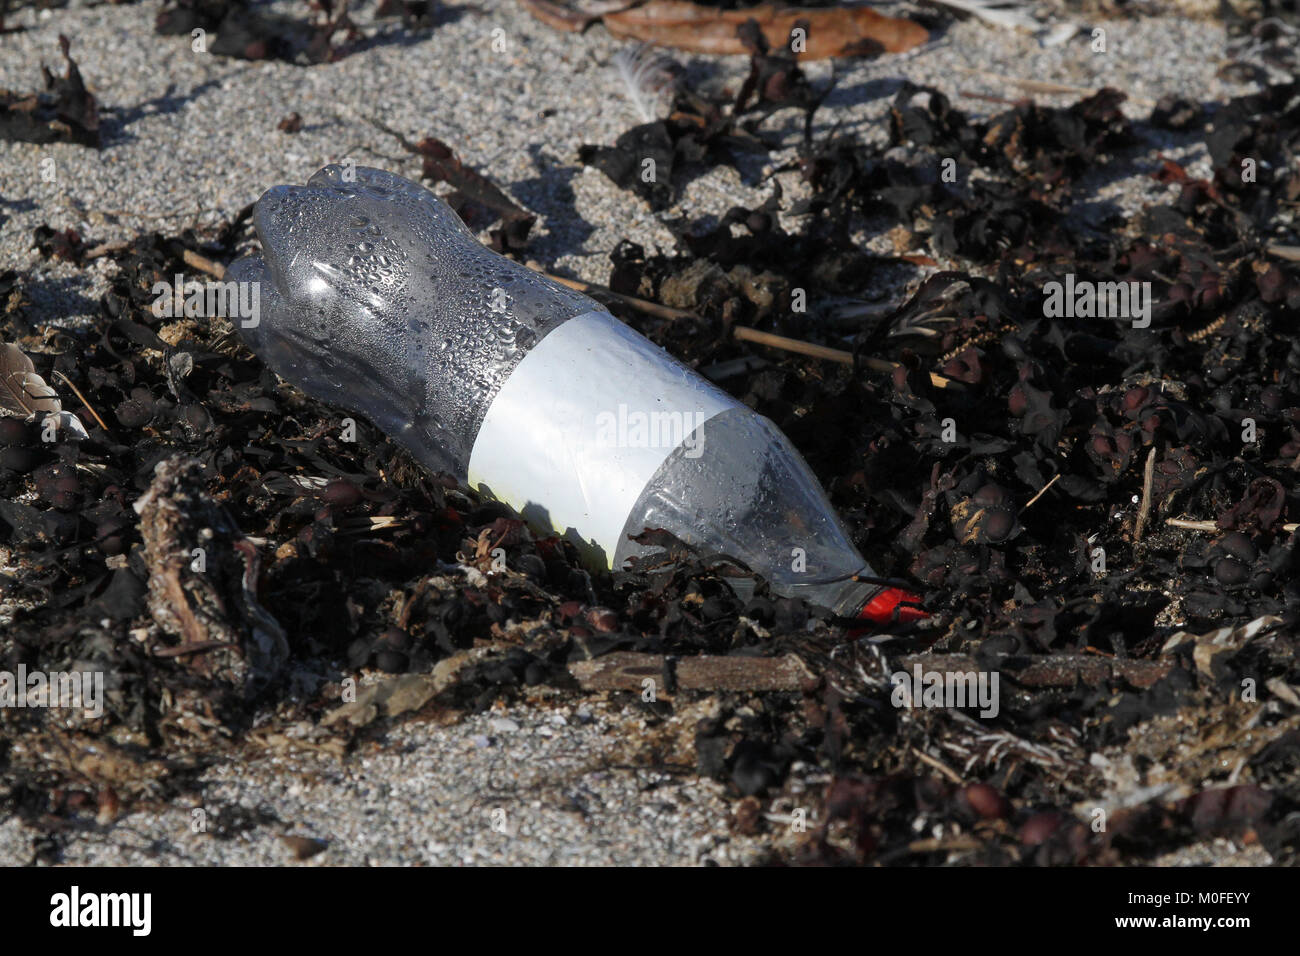 Plastic soft drink bottle on beach. - Stock Image